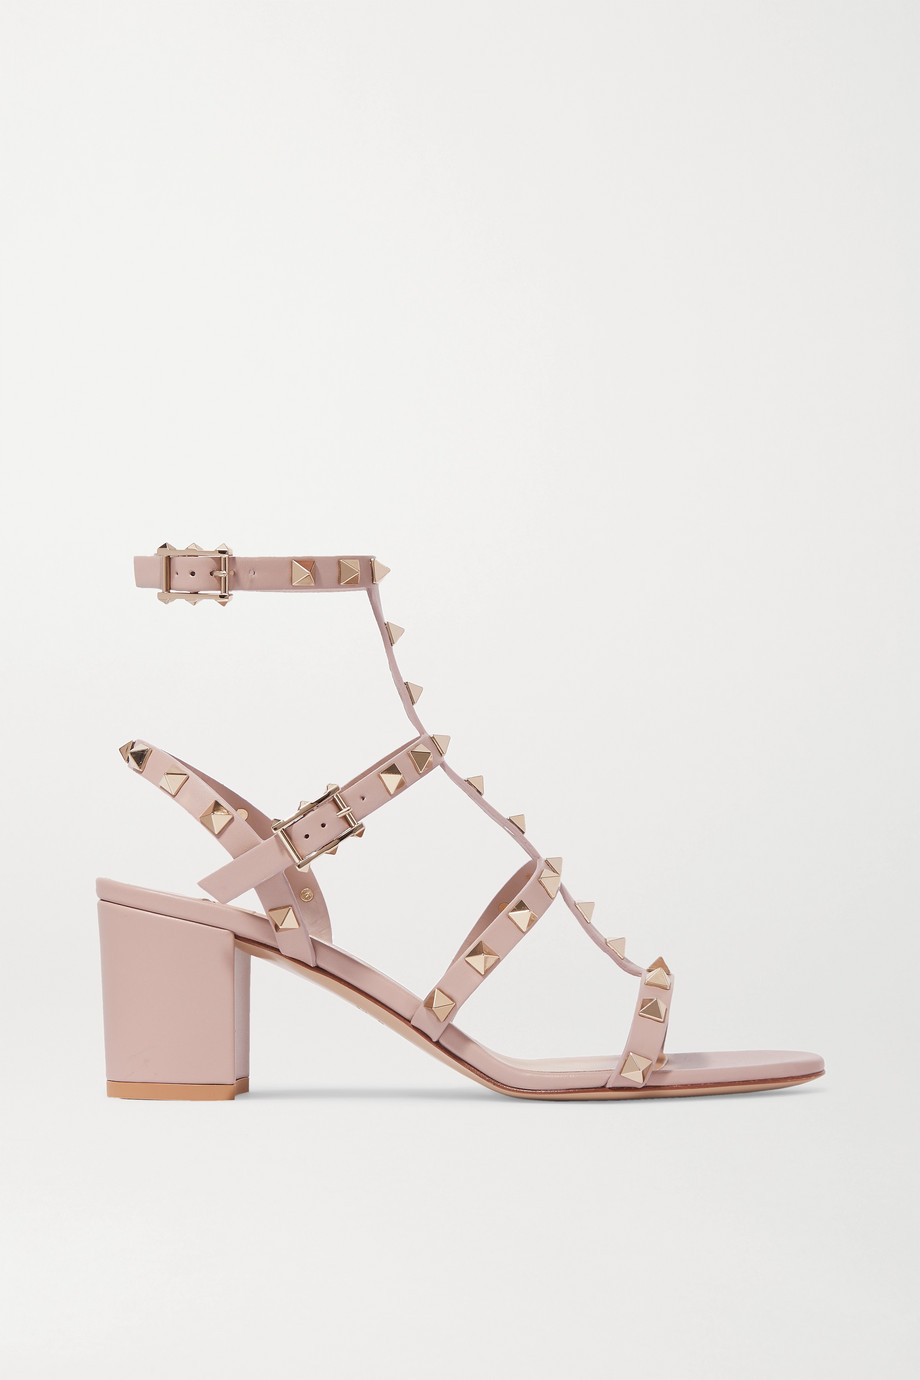 VALENTINO Valentino Garavani Rockstud 55 leather sandals